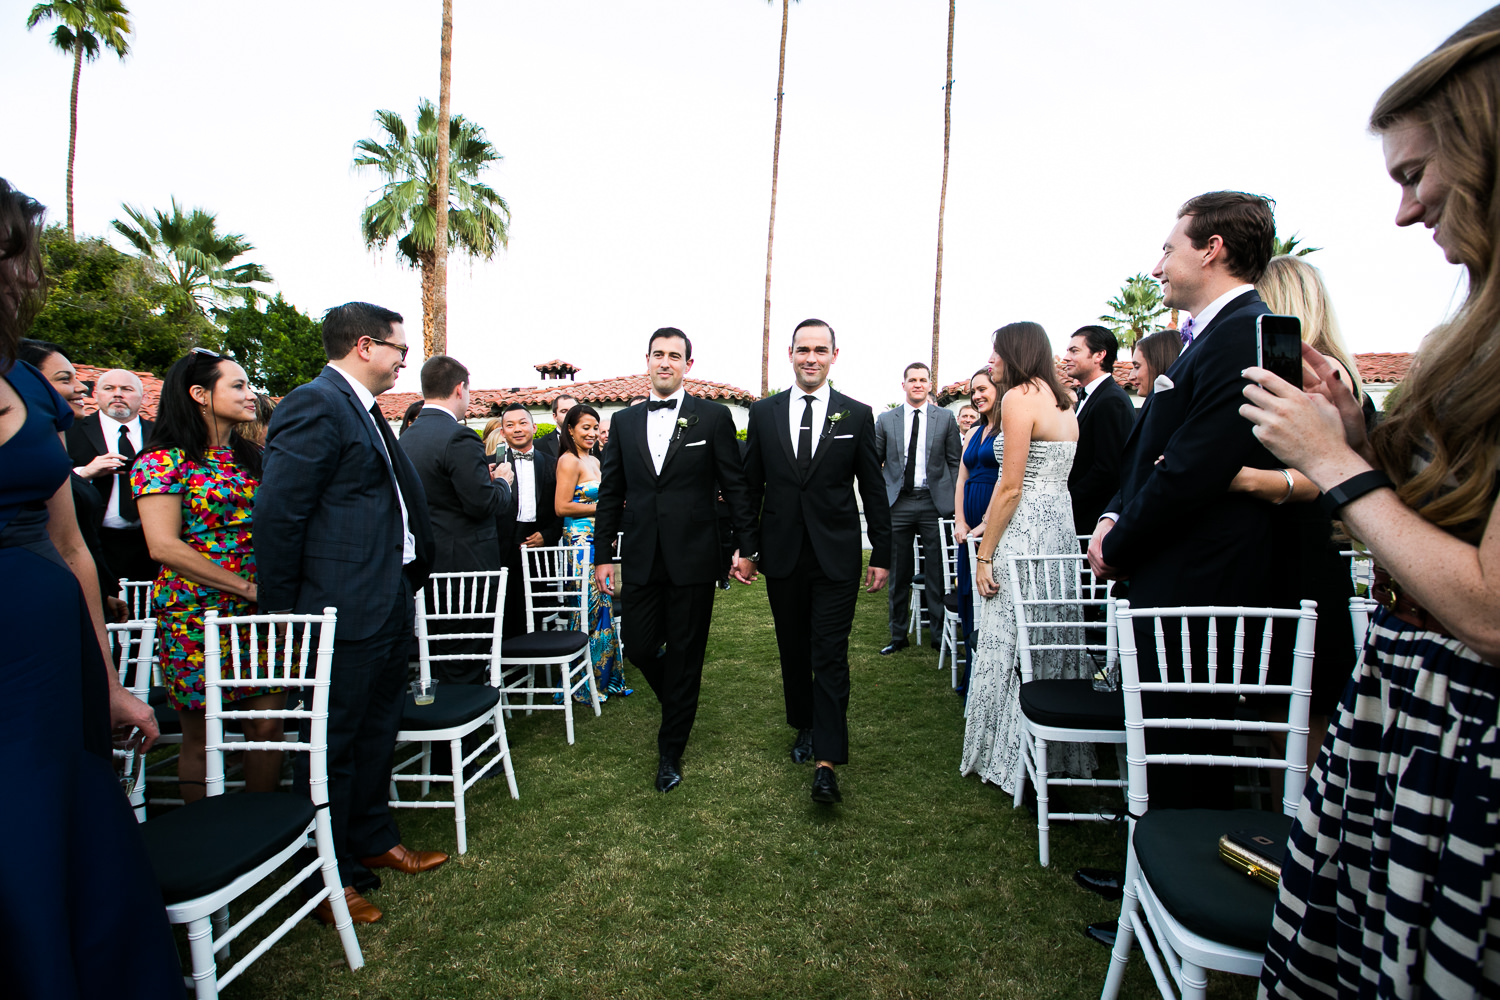 Same Sex Avalon Palm Springs Wedding - Walking The Aisle Together